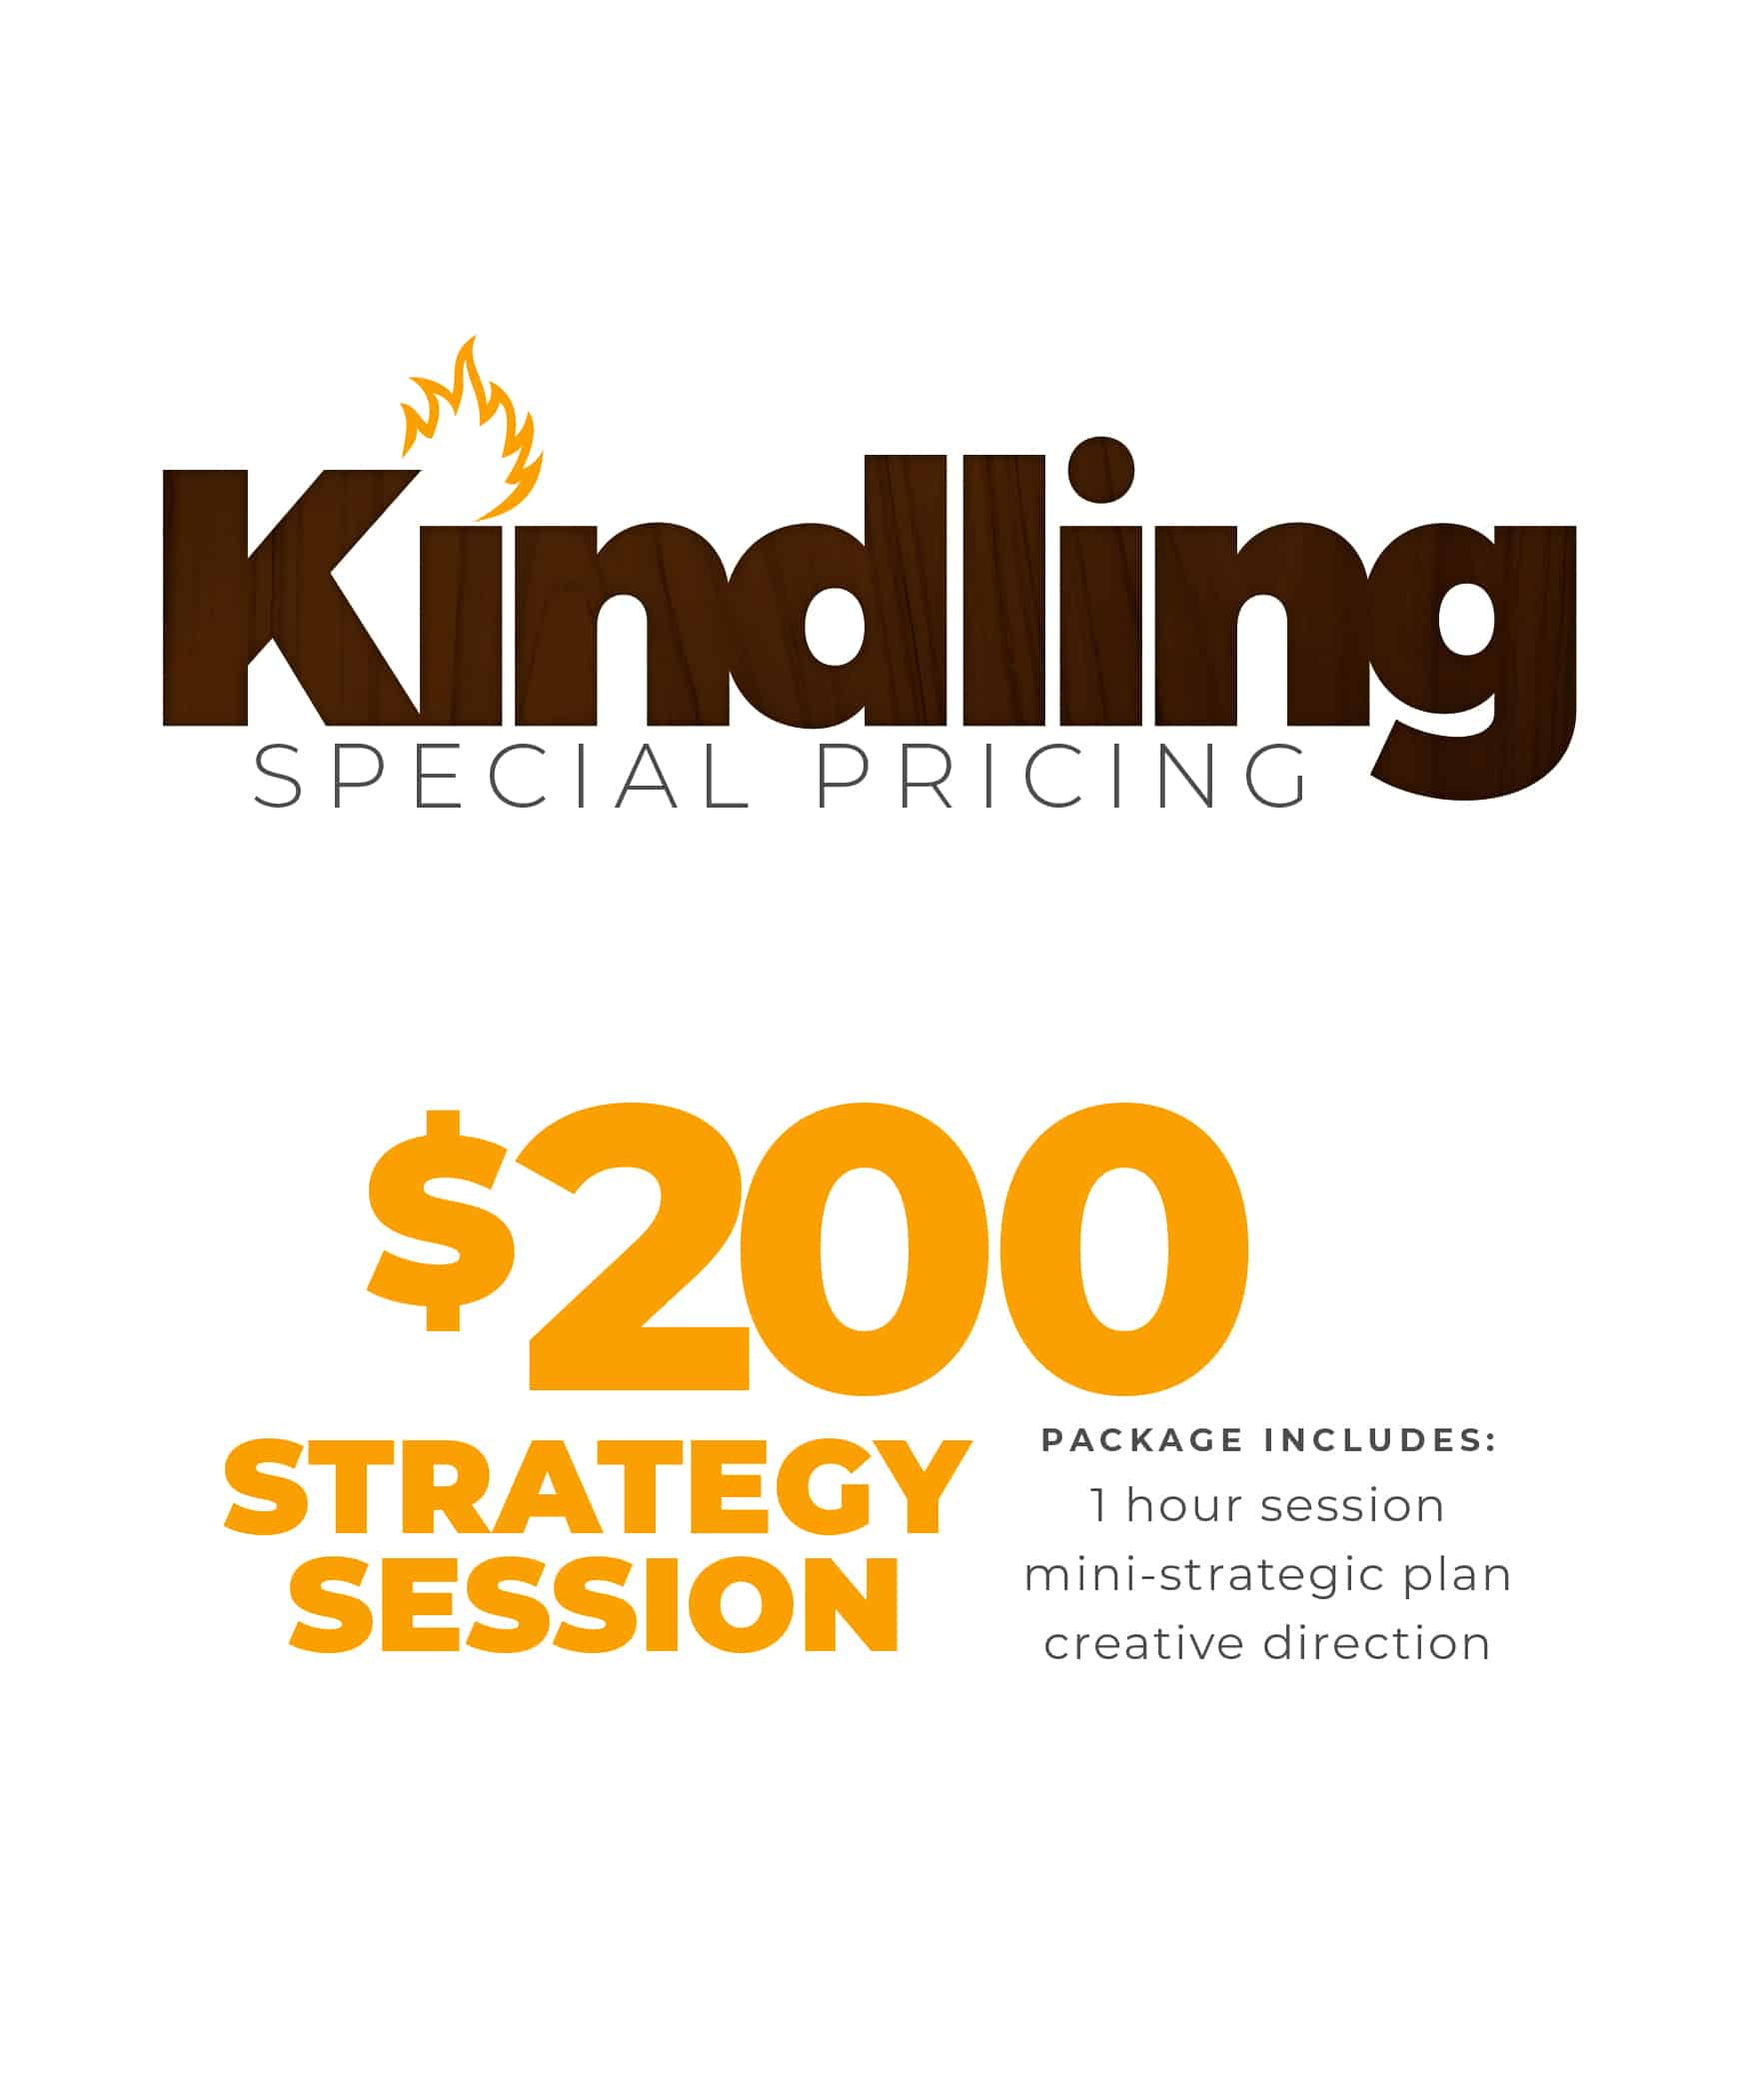 Kindling Special Pricing Holiday Special